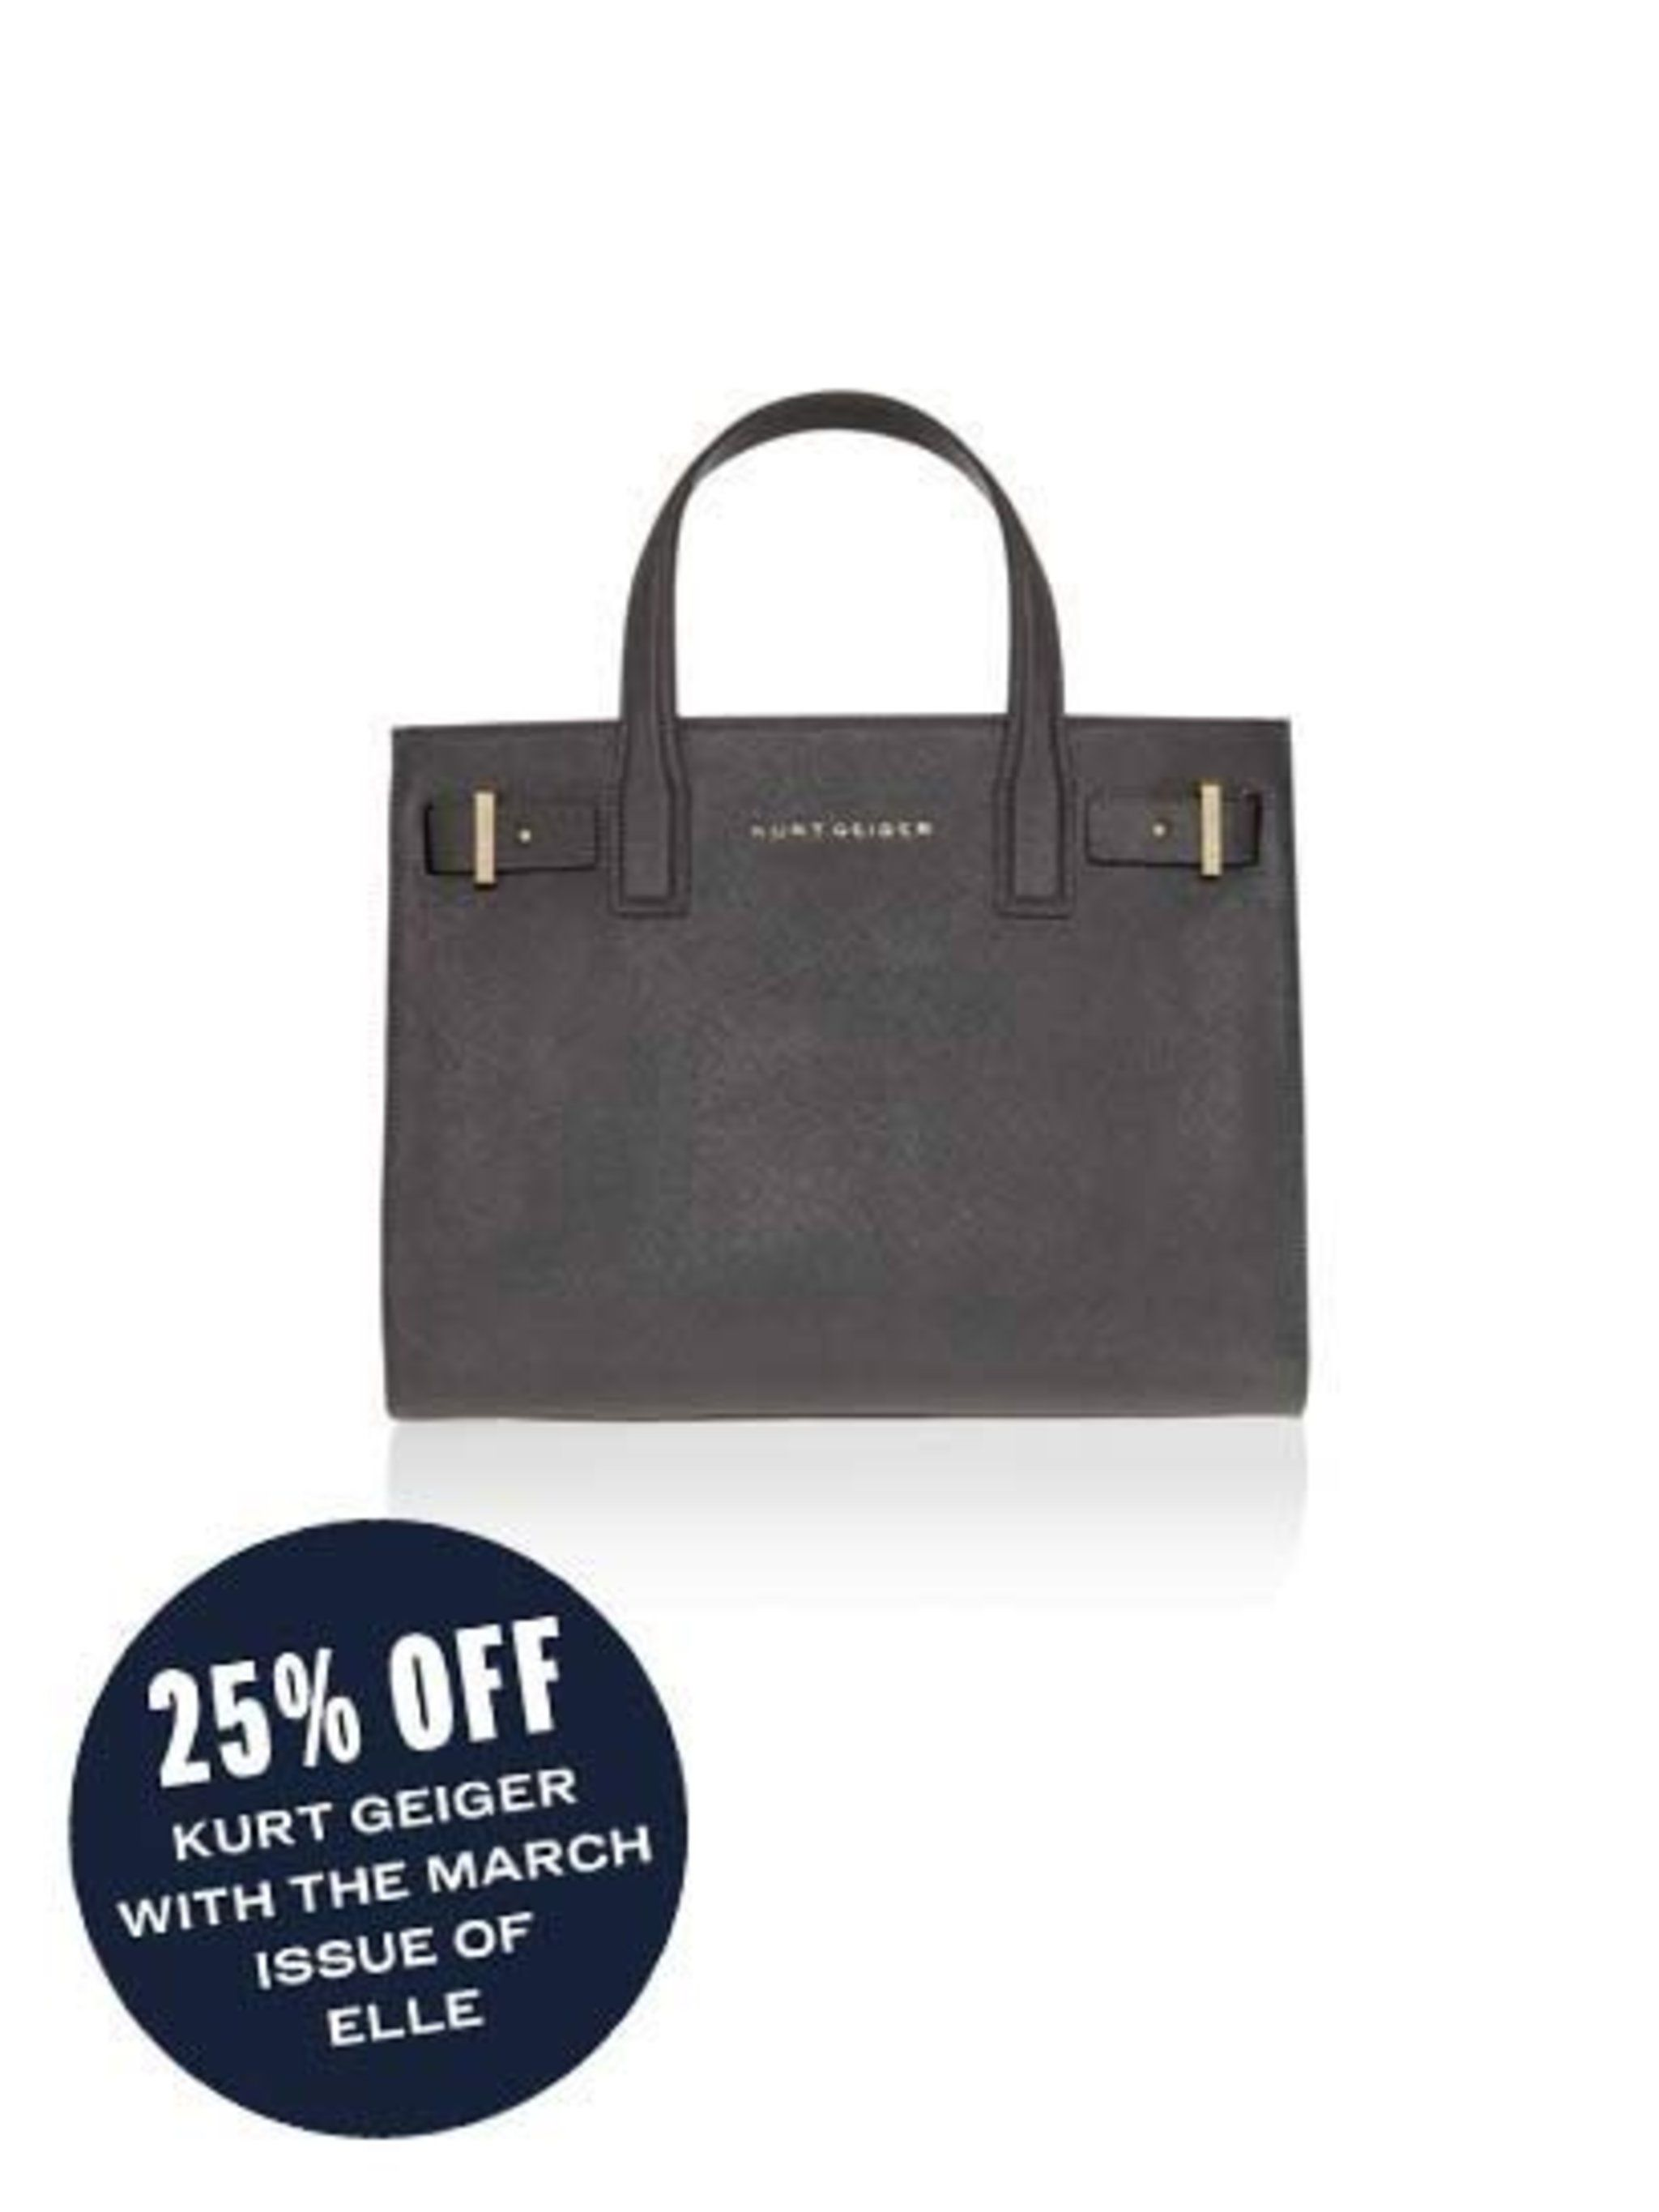 "<p>Why not opt for black instead of grey? </p><p><a href=""http://www.kurtgeiger.com/saffiano-london-tote-grey-saffiano-leather-kurt-geiger-london-accessory.html"">Classic tote</a>, £195</p>"